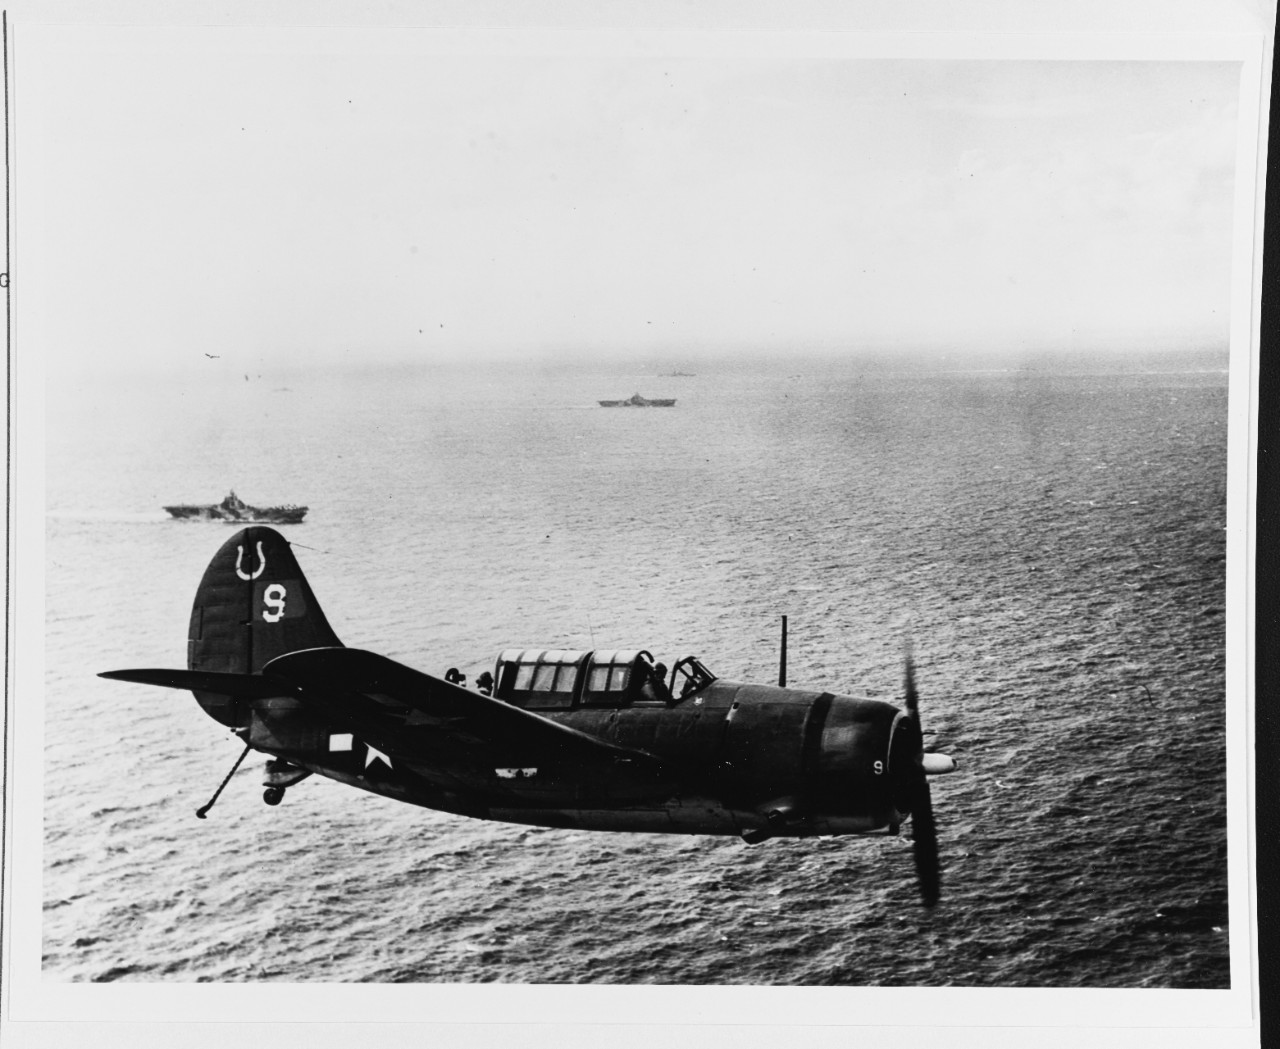 SB2C from USS HANCOCK (CV-19)